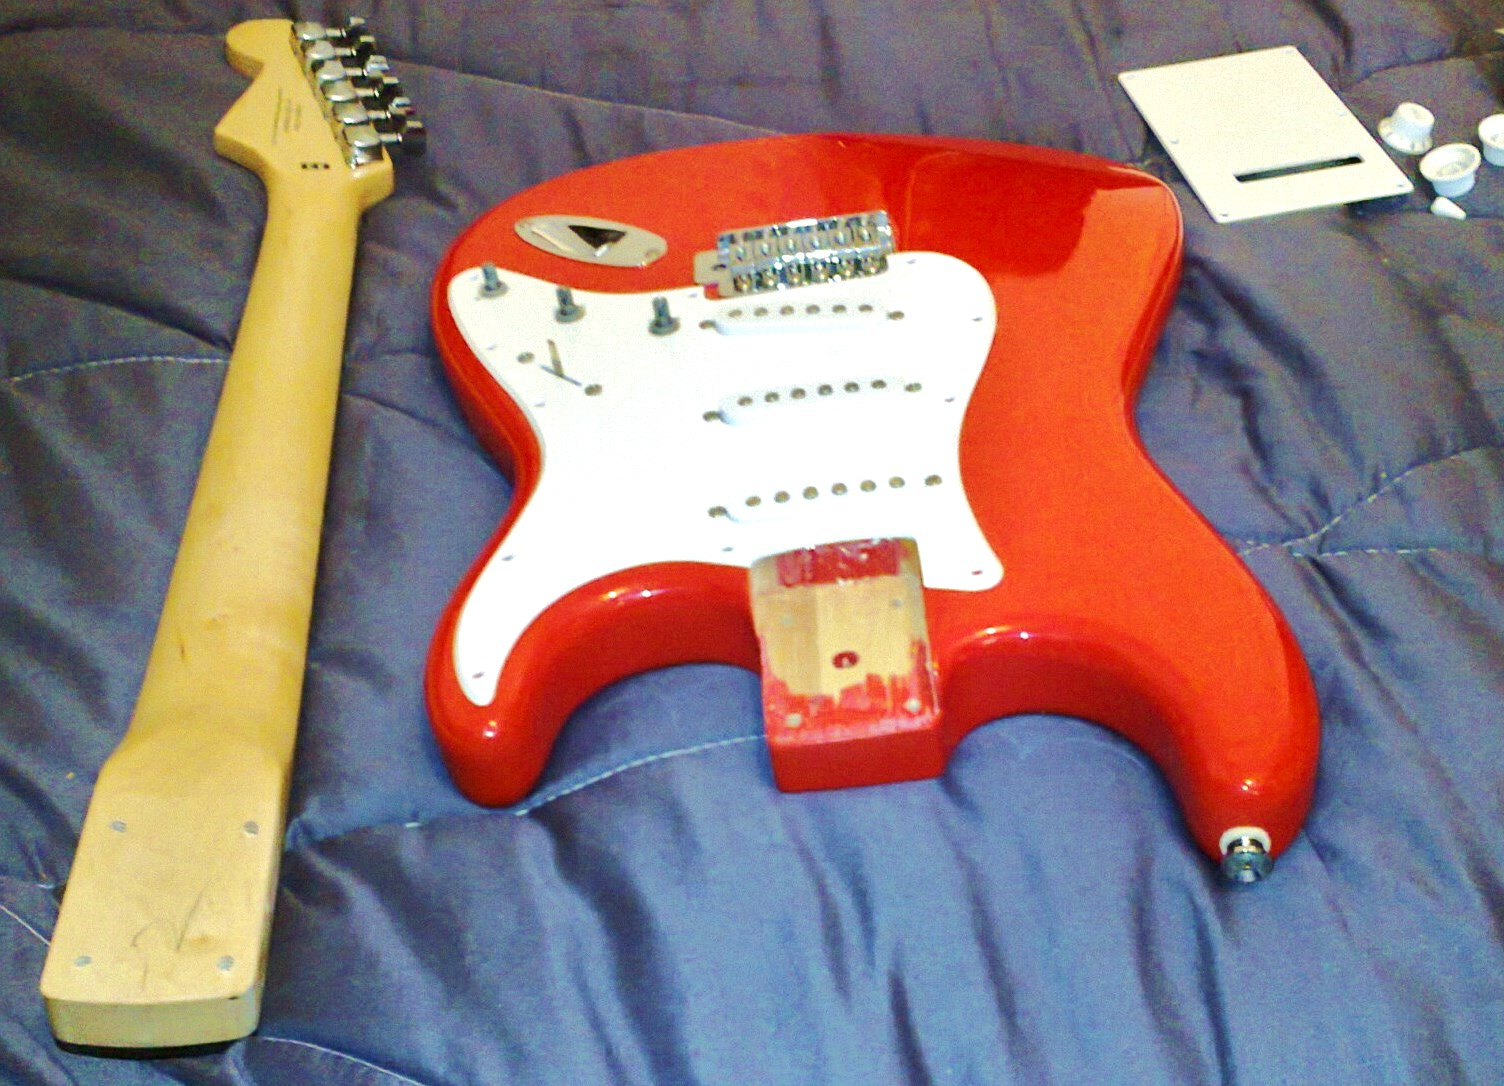 Pimp My Squier Bullet Guitar Dreamer Fender Strat Wiring Diagram 1994 This Fiesta Red Was Finished In A Much More Accurate Ferrari Colour While The Old Frd Model Had Faded Pinky Candy Apple Type